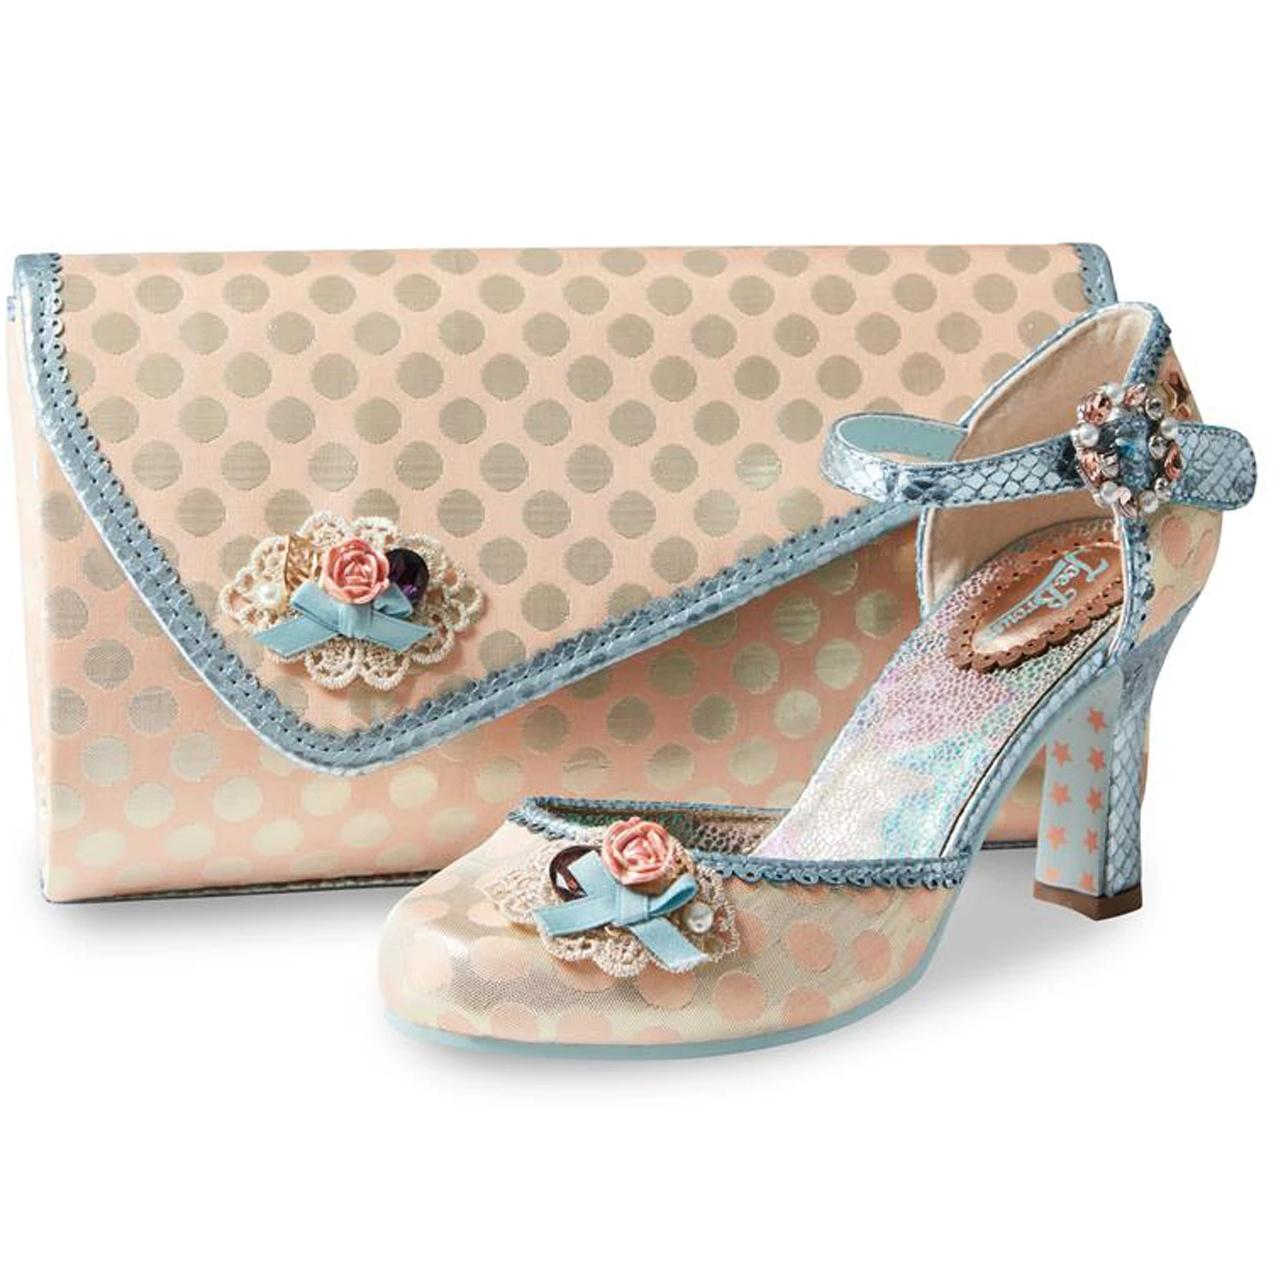 Joe Browns Couture Orphelia Shoes Peach-Vendemia